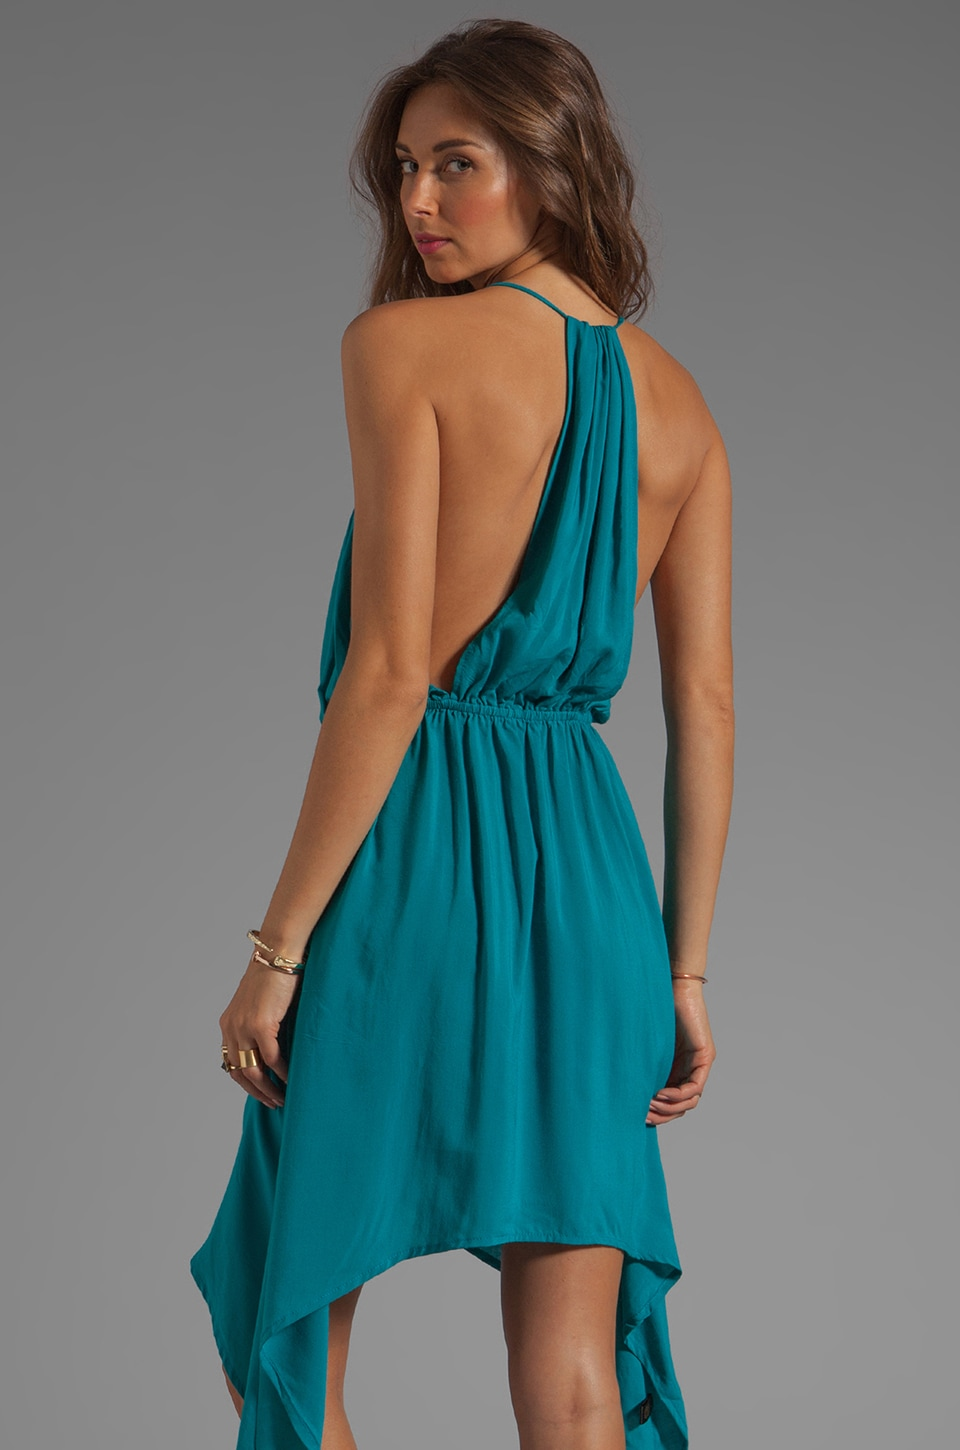 Indah Rinjani Draped Back Sundress in Turquoise